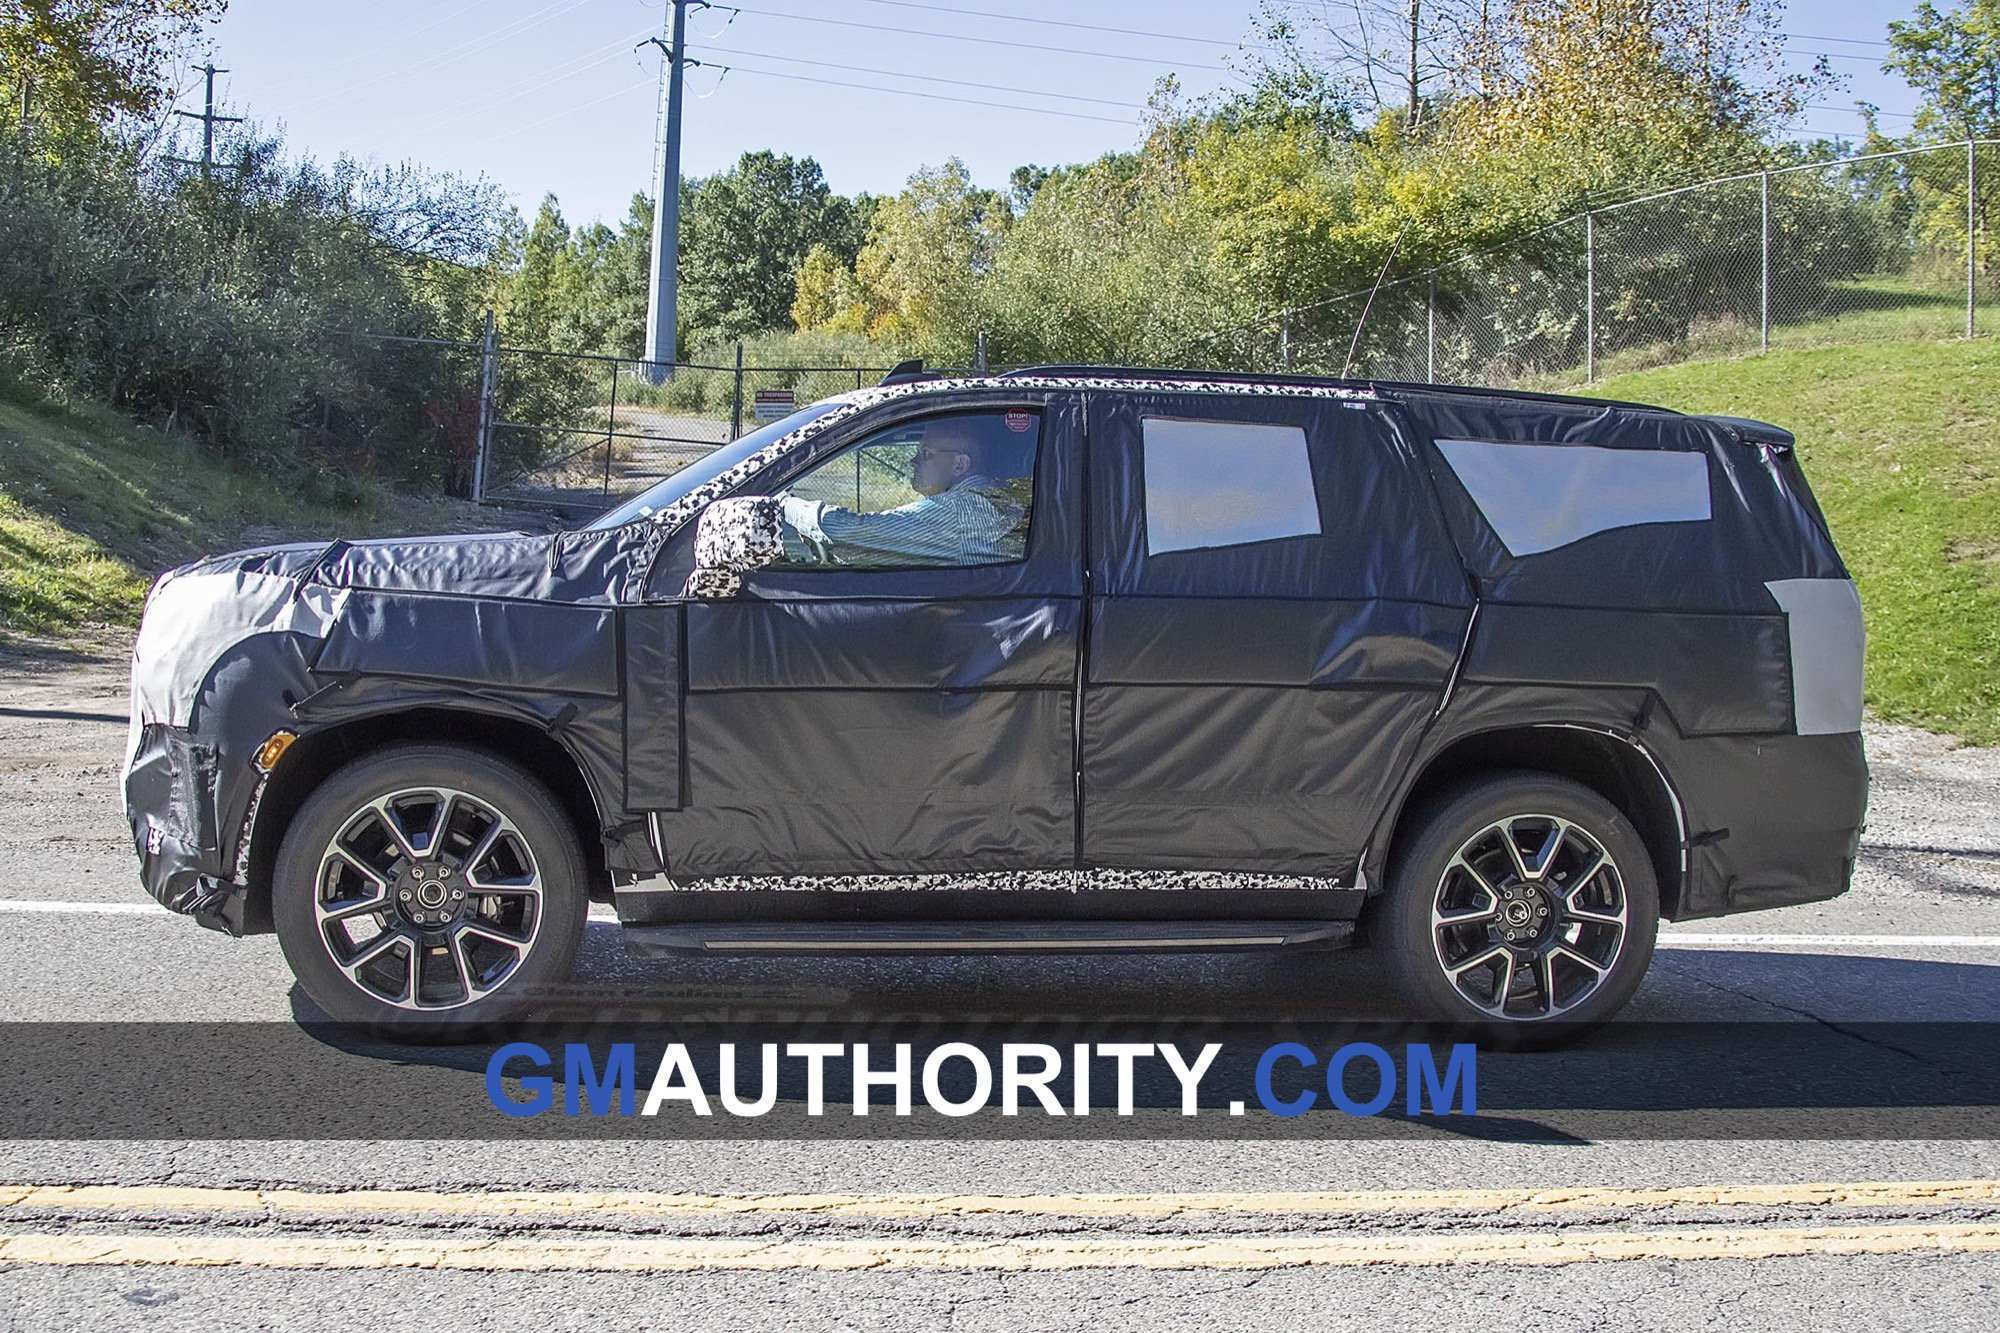 26 New 2020 Chevy Tahoe Pictures